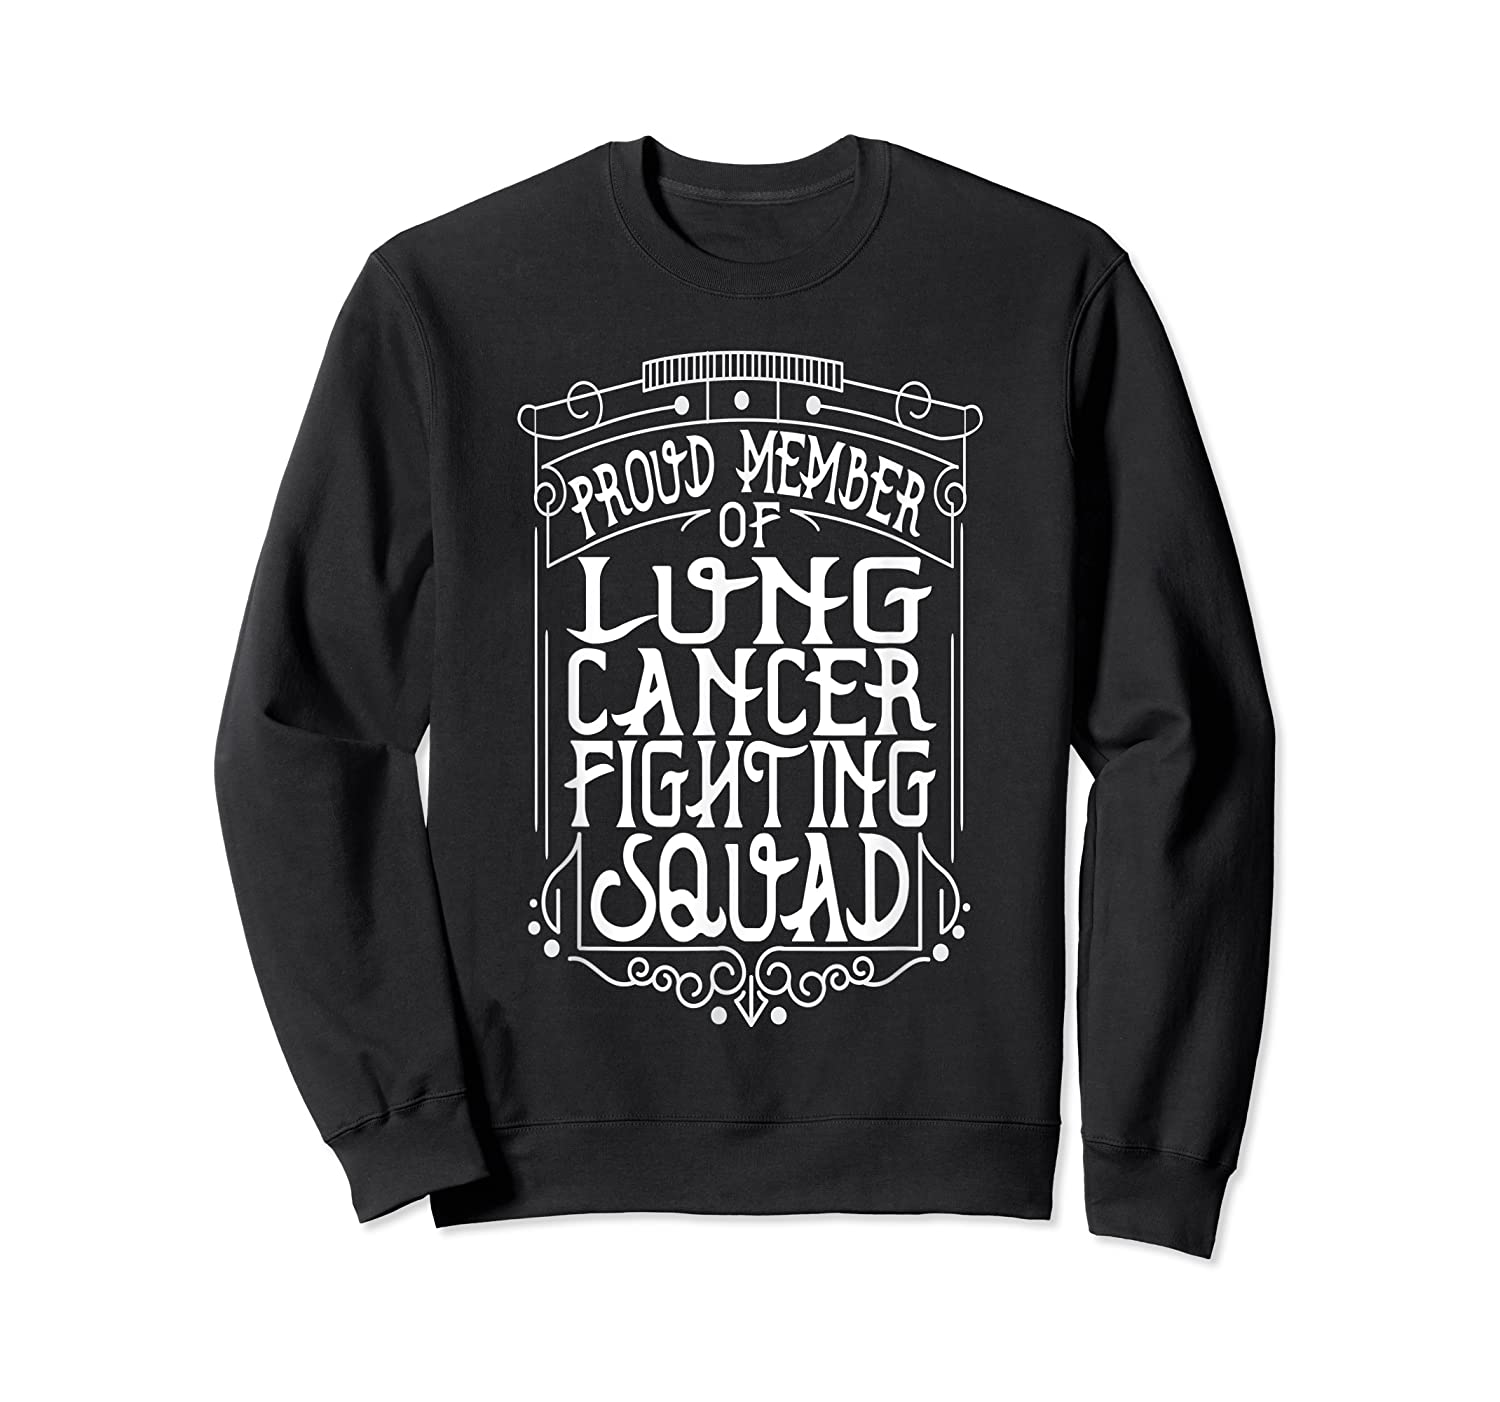 Fighting Squad Lung Cancer Awareness T-shirt Crewneck Sweater